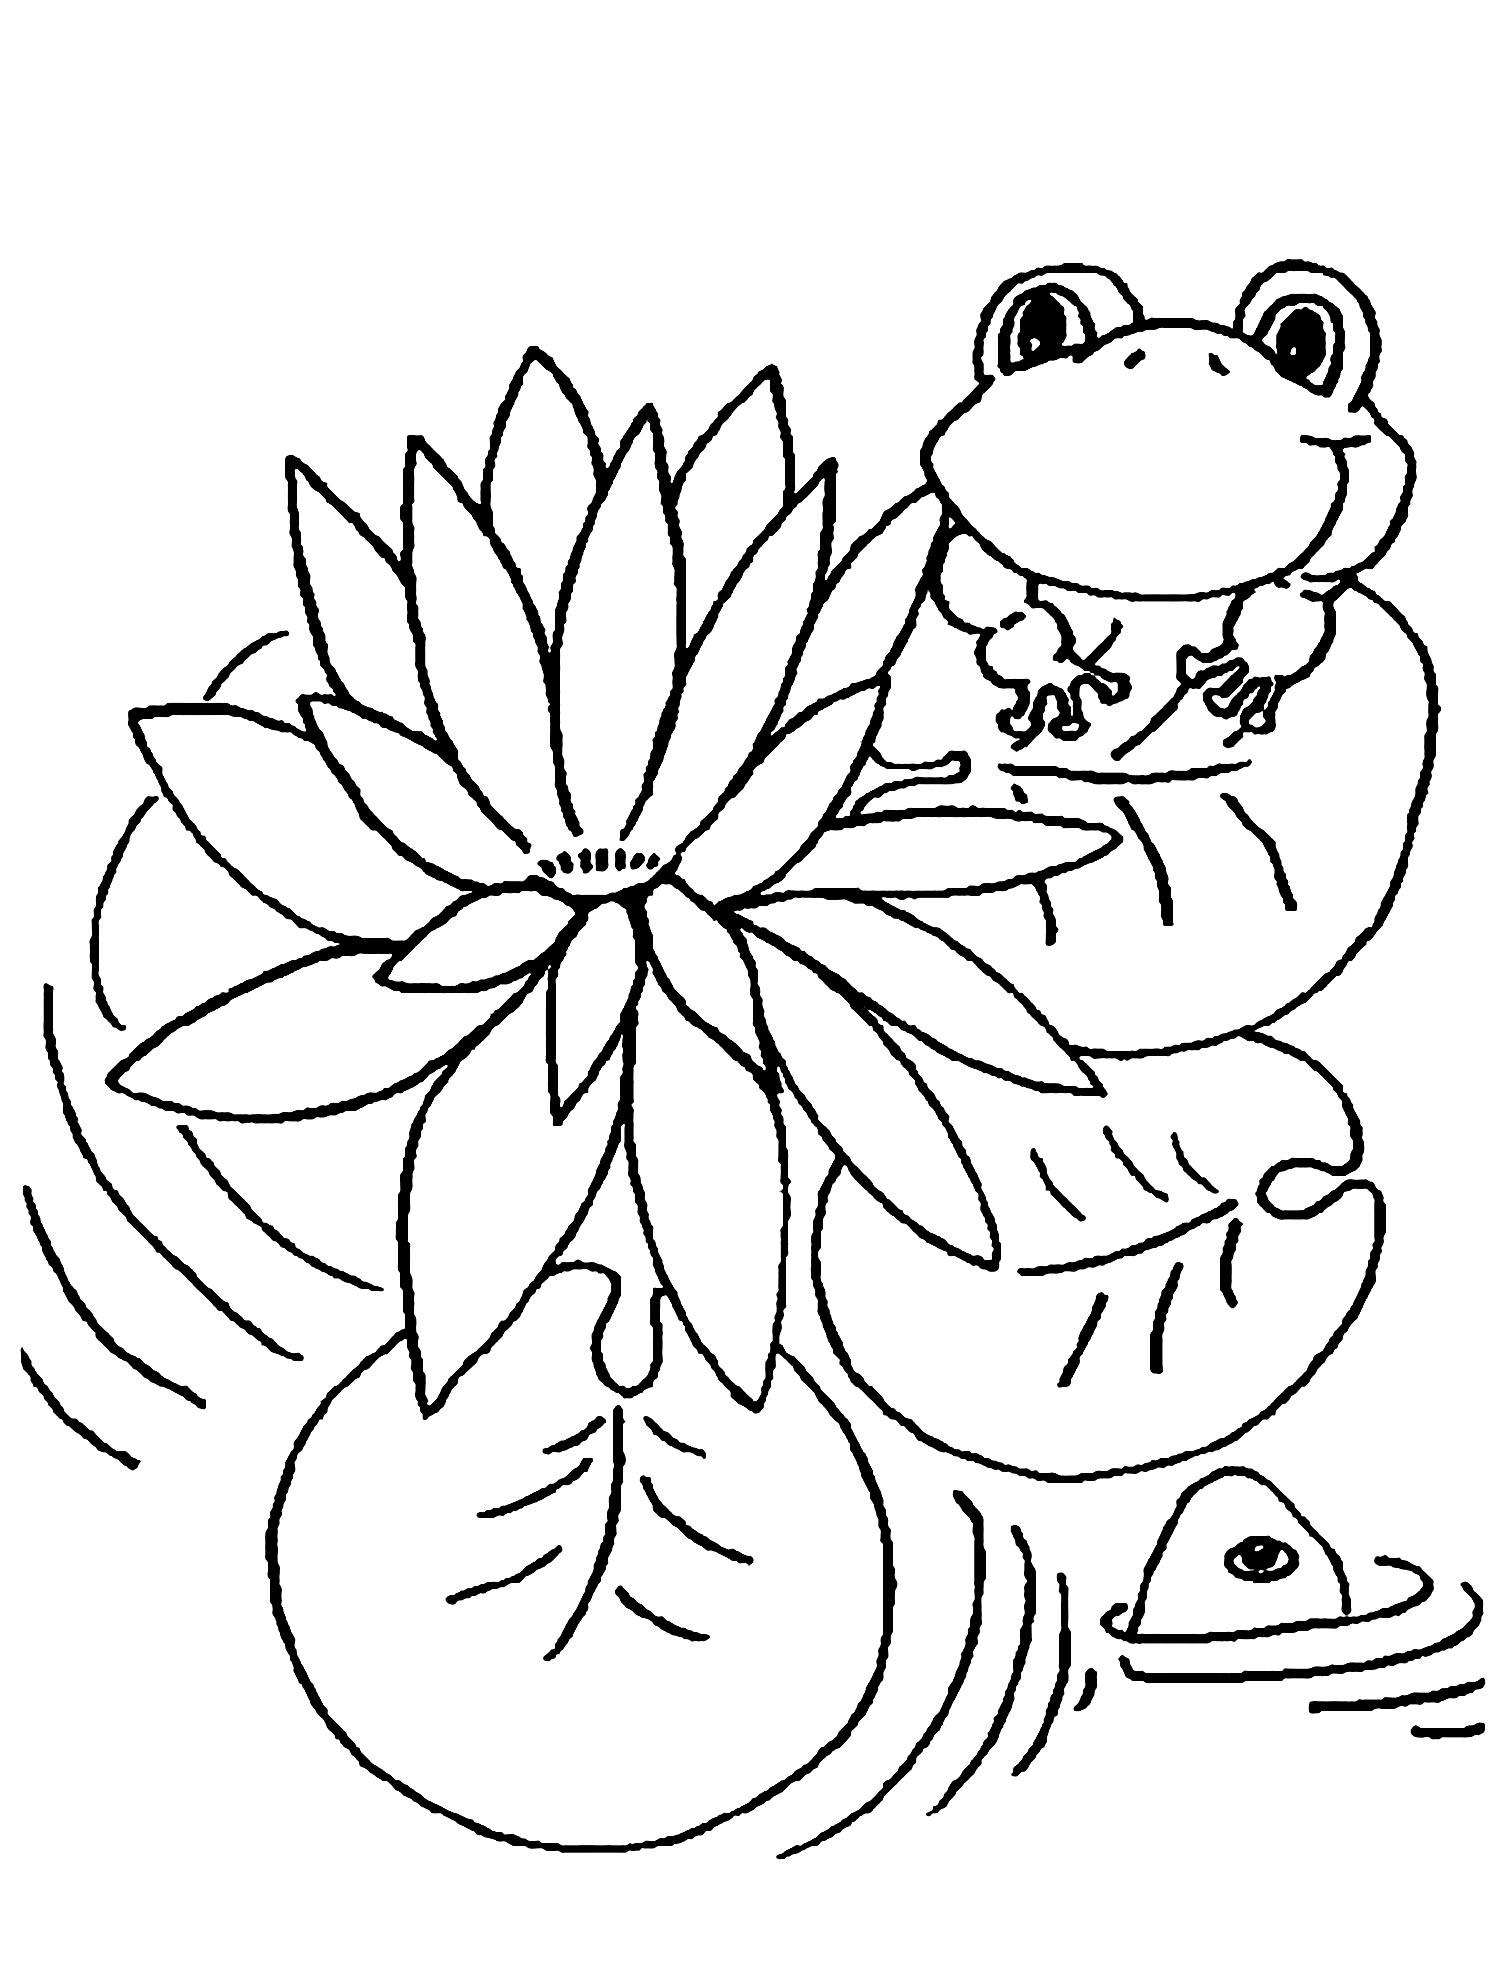 Printable Frogs coloring page to print and color